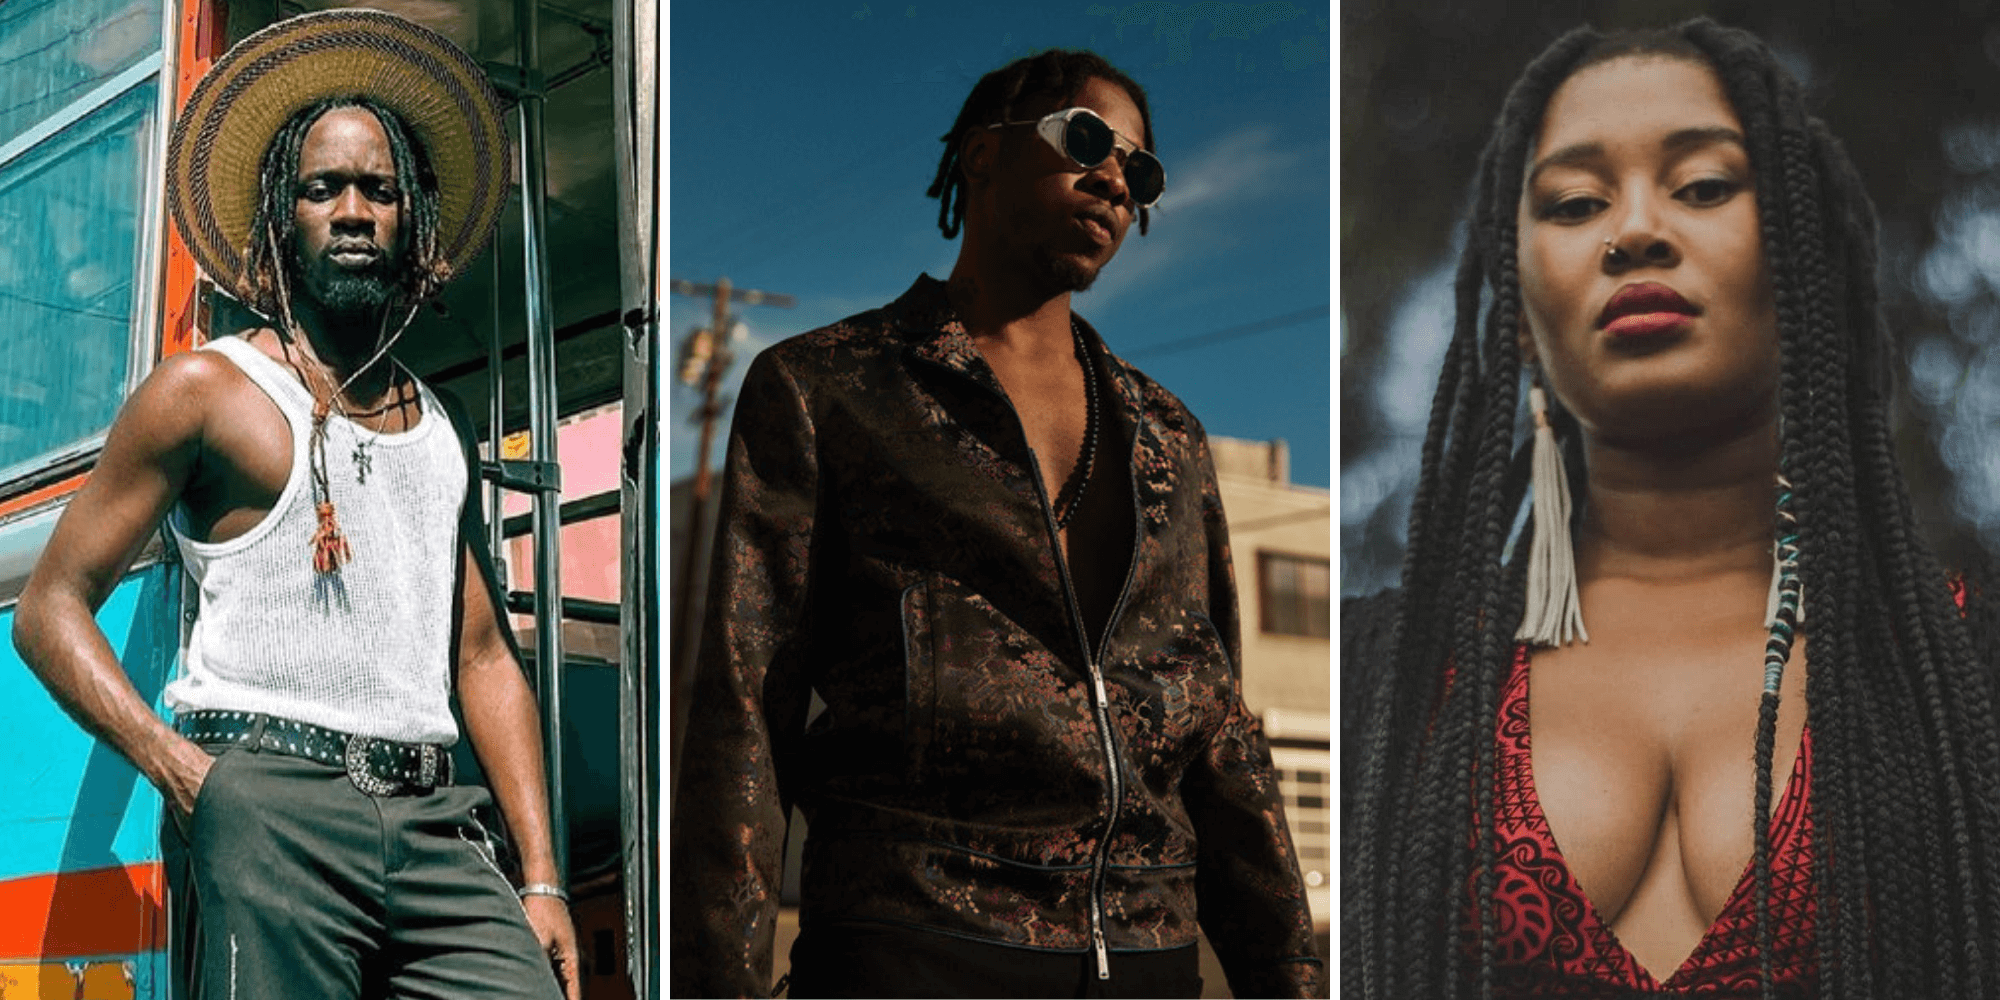 Songs of the Day: New music from Davolee, Runtown, Mr Eazi, Zu. & more